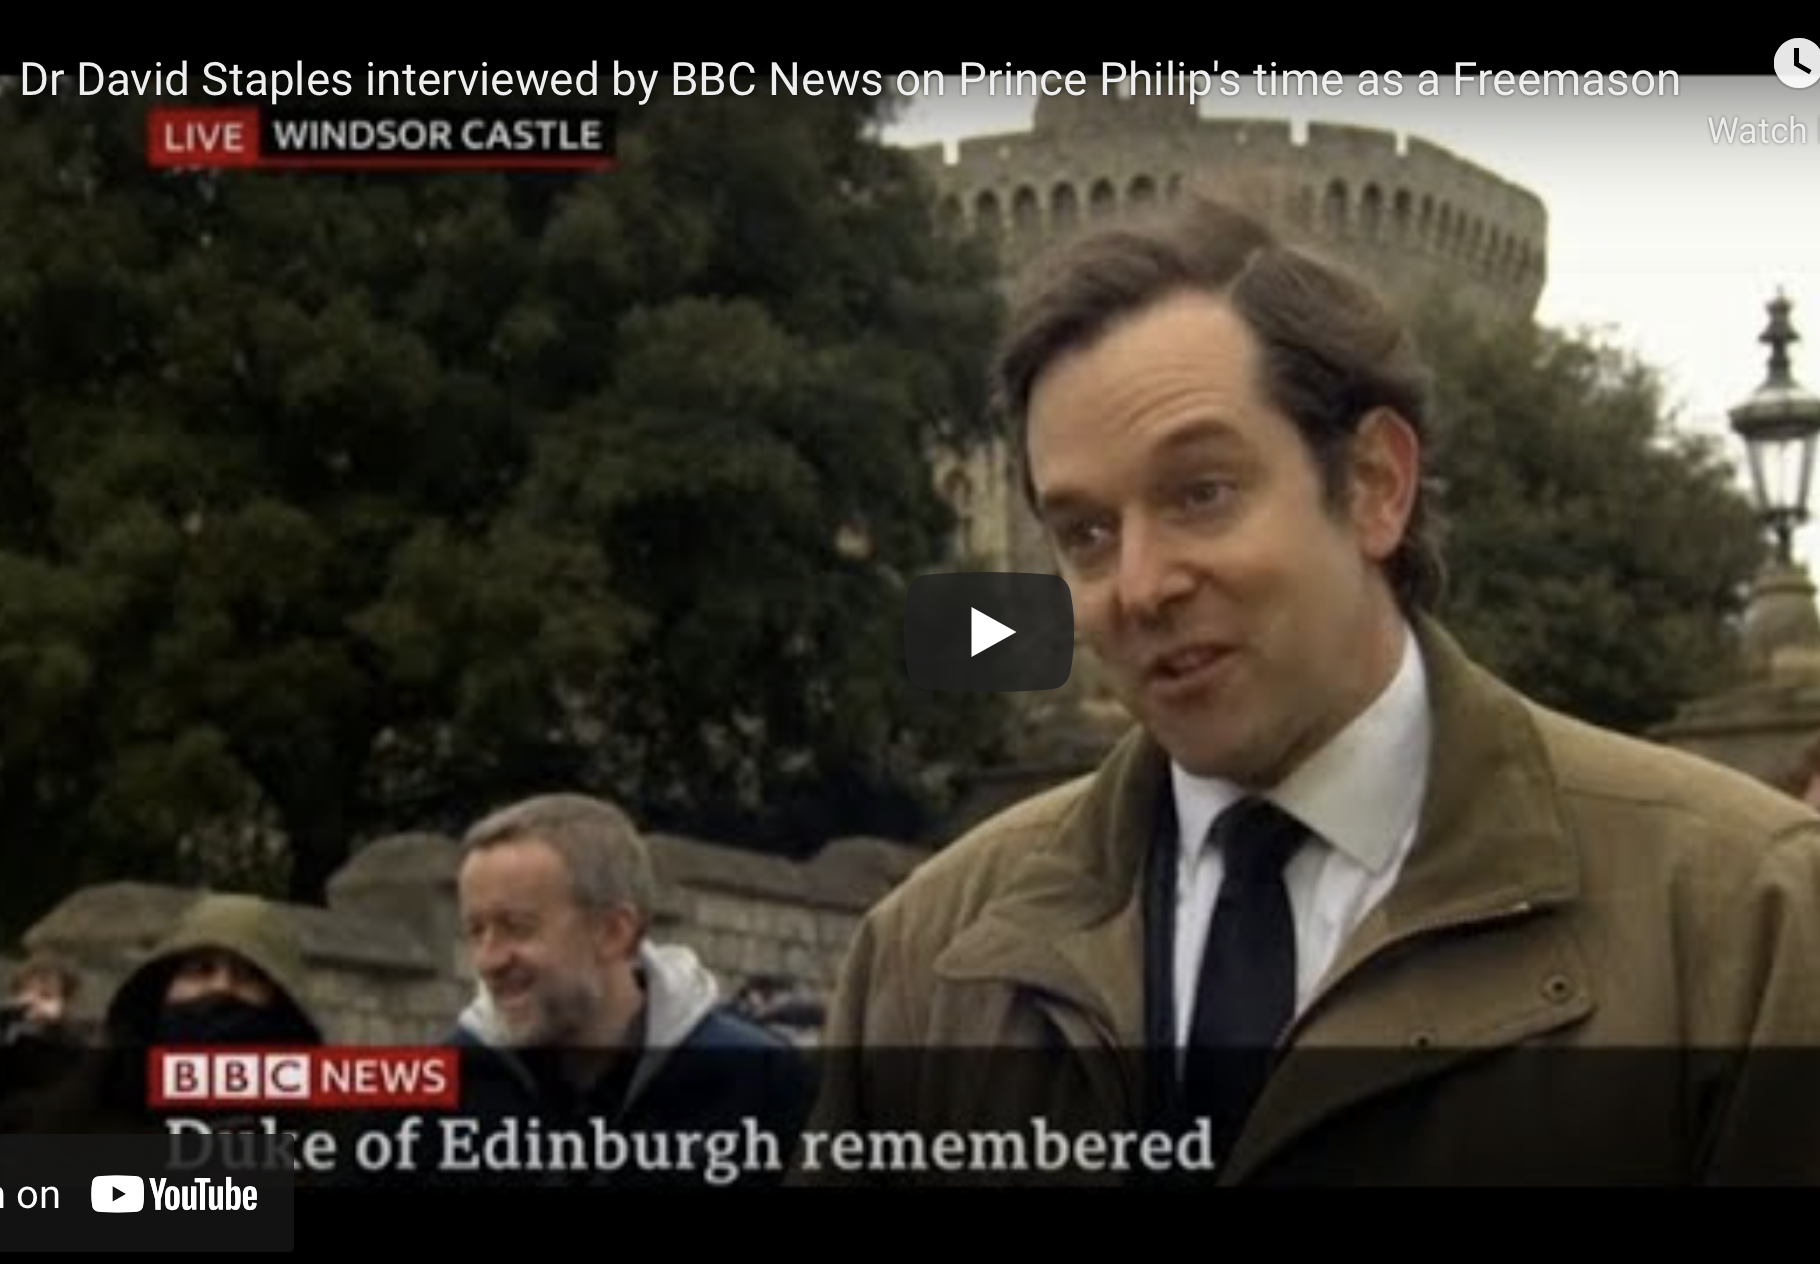 Dr David Staples interviewed by BBC News on Prince Philip's time as a Freemason